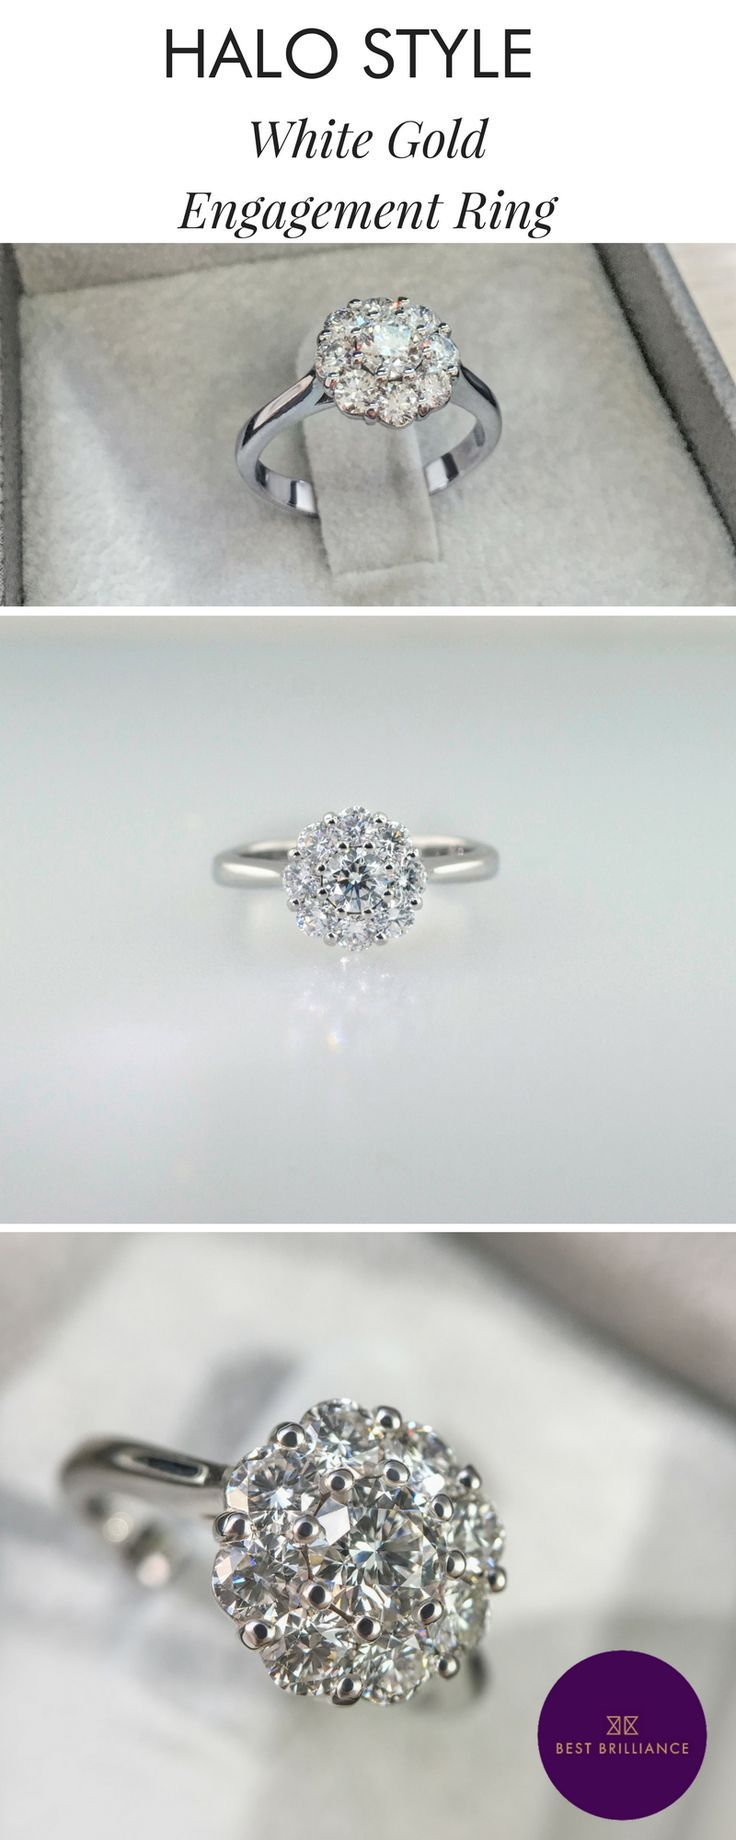 A Unique 032 Carat F Vs2 Round Center Diamond Is Mounted Along With 071  Carat Side